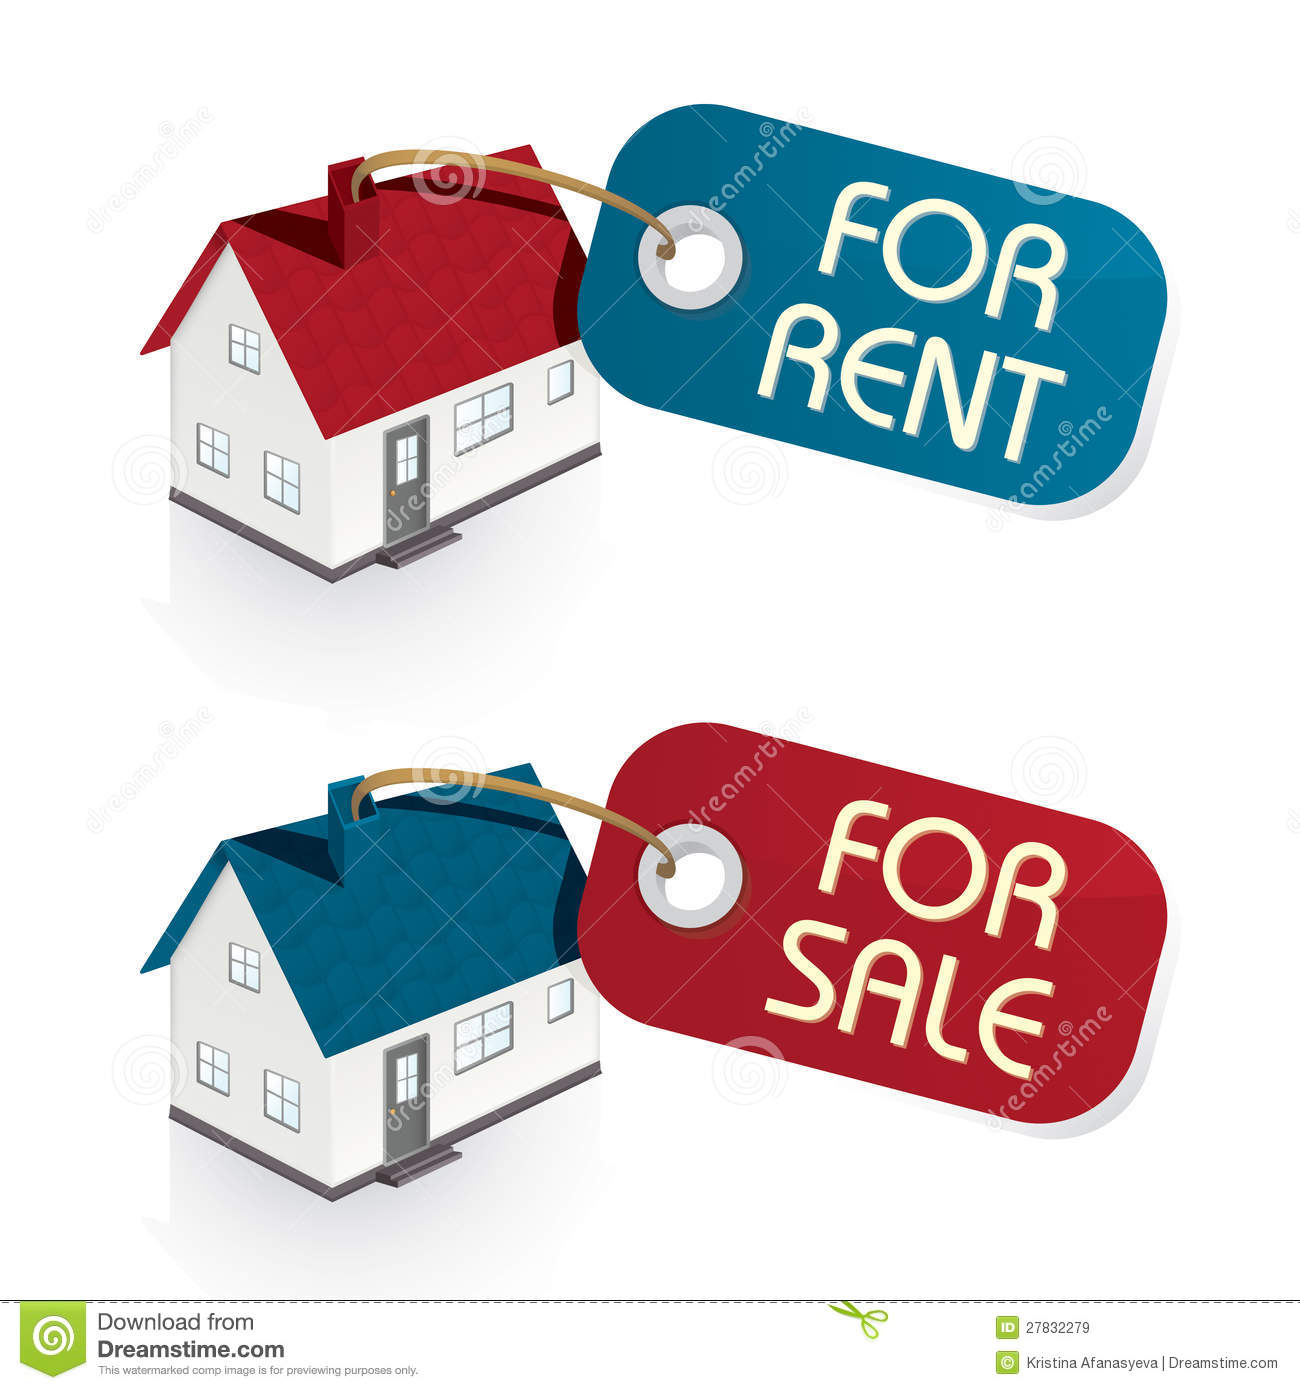 Free Houses For Rent: House For Sale And For Rent Tags Stock Illustration